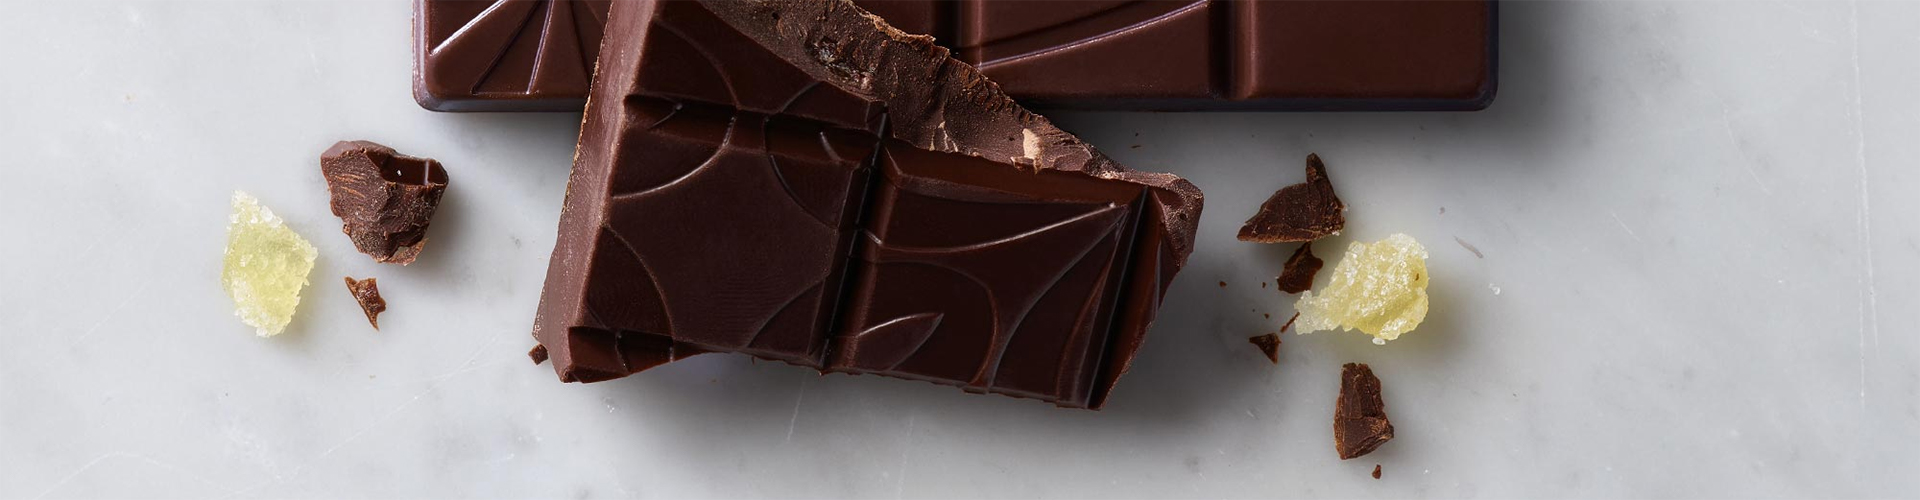 image showing ginger and chocolate pieces